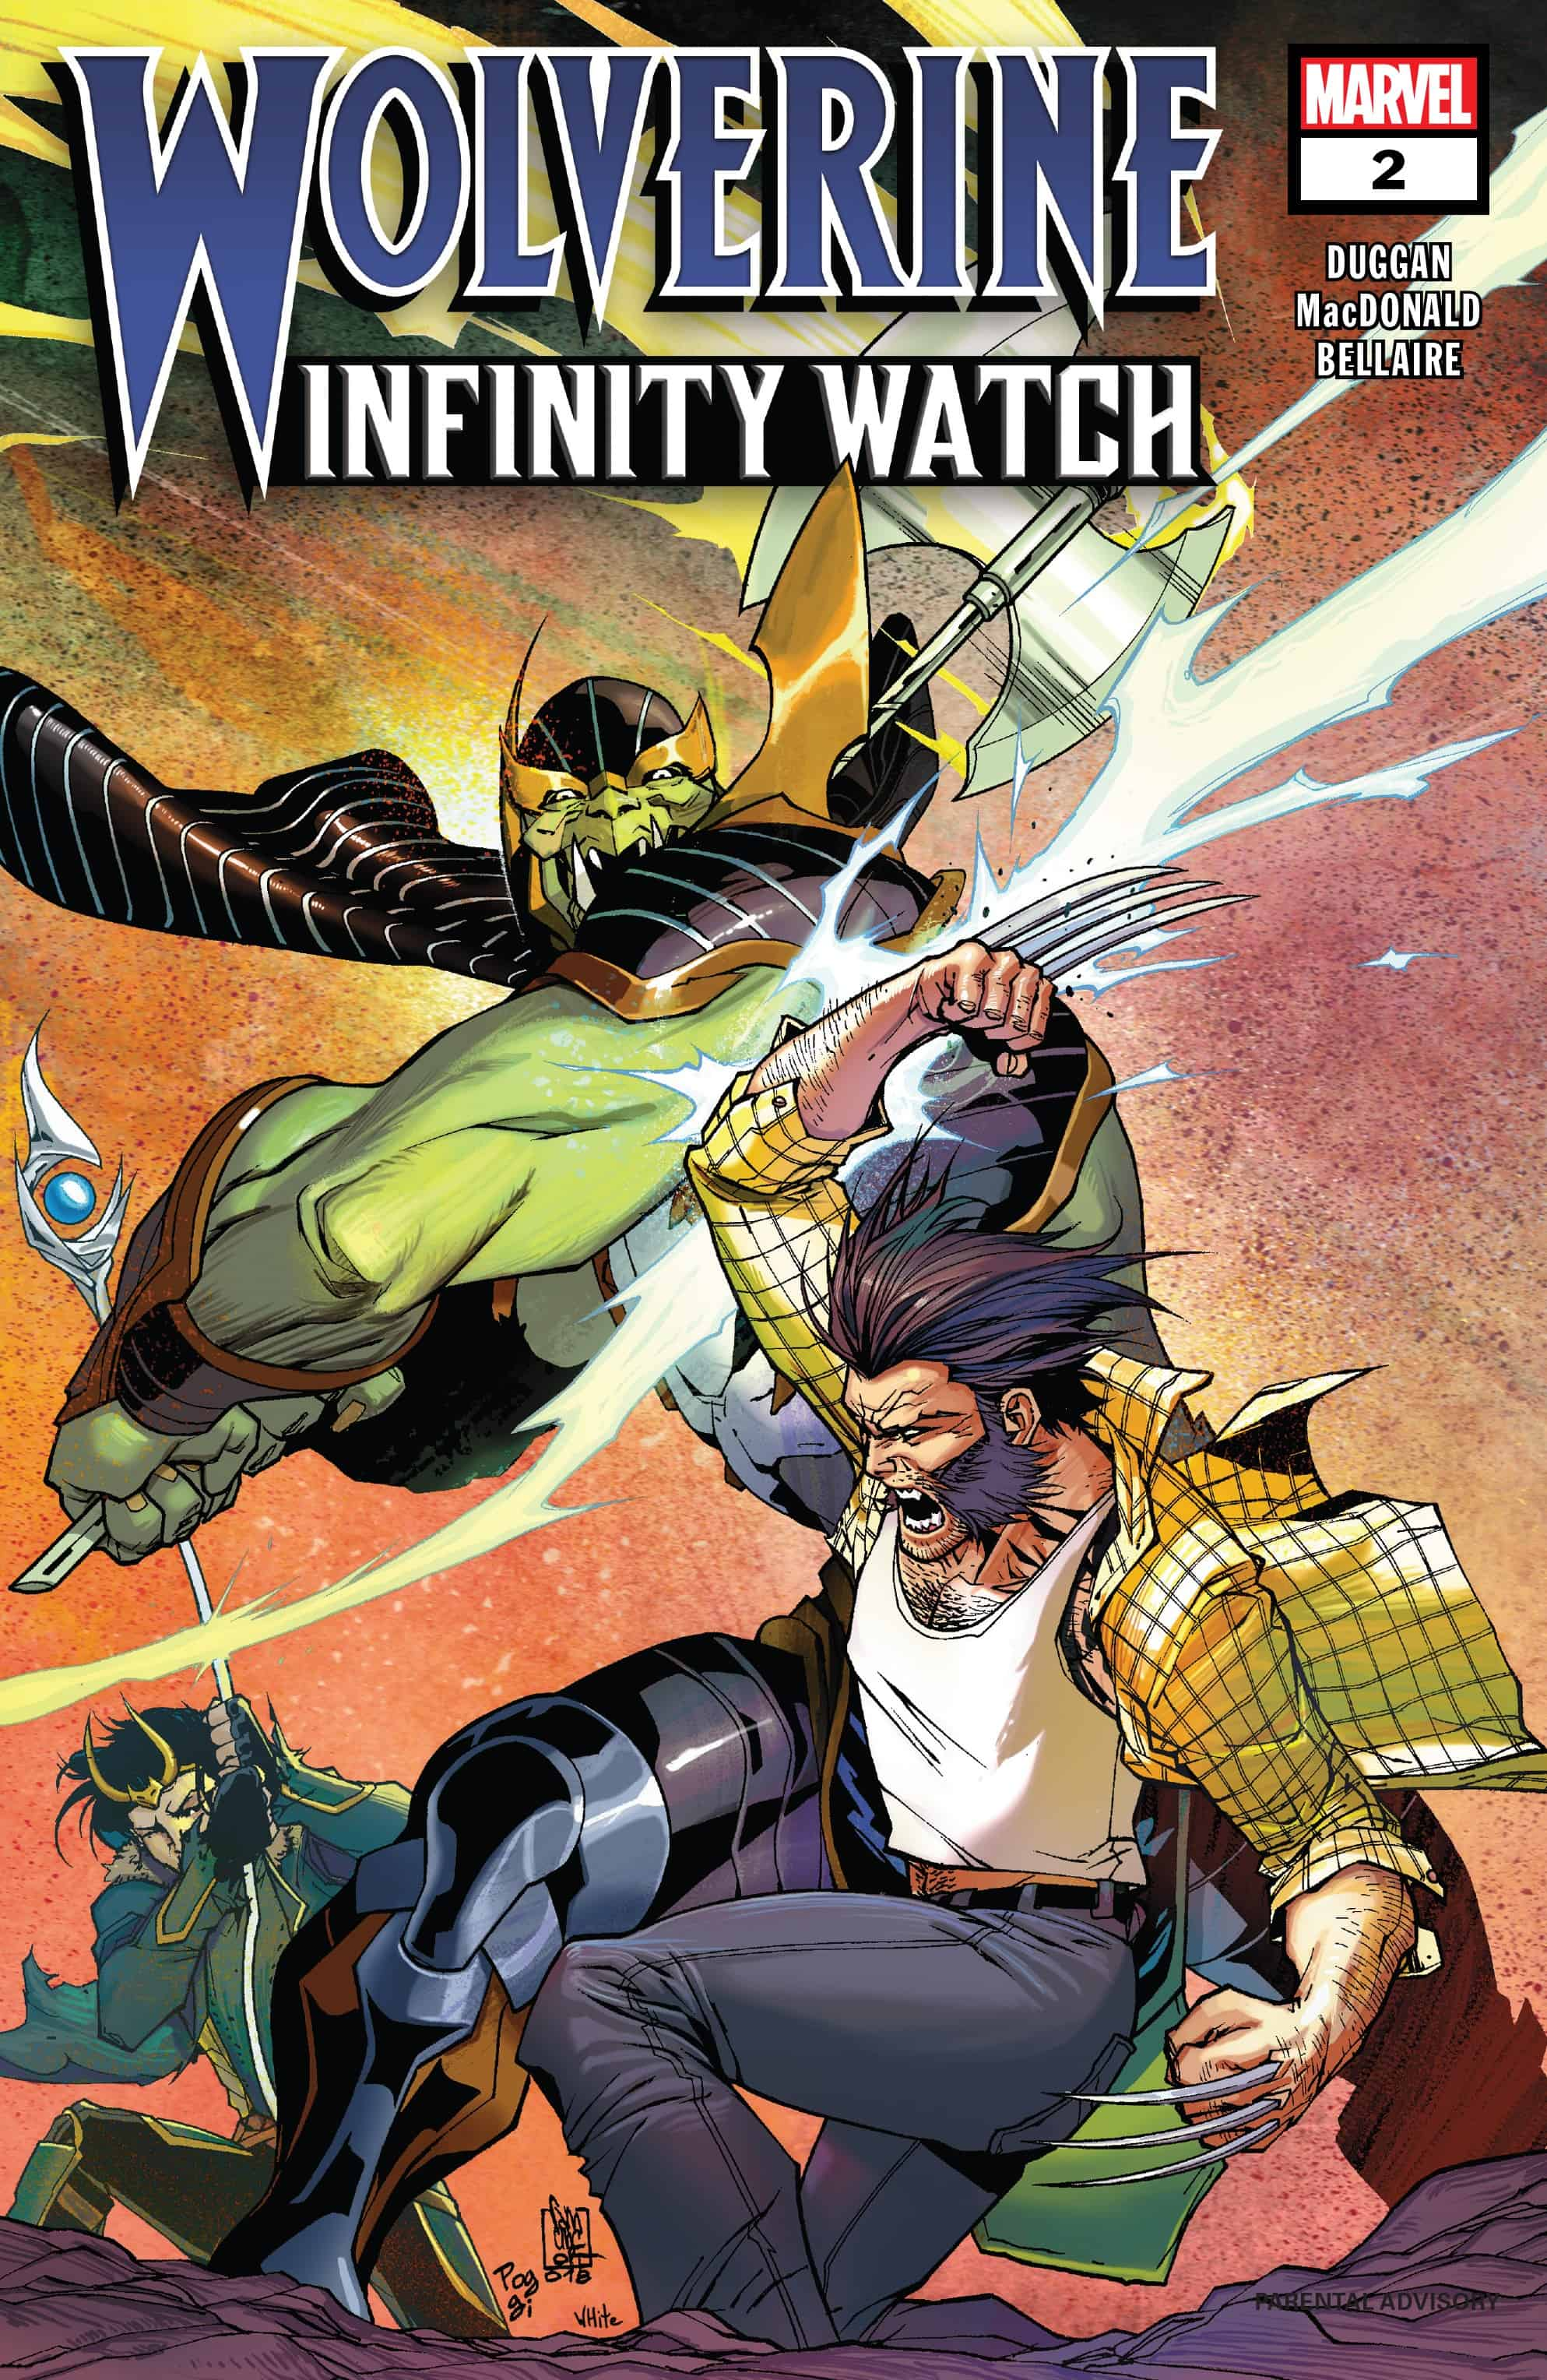 Wolverine: Infinity Watch #2 (of 5): Marvel Team-Up Featuring